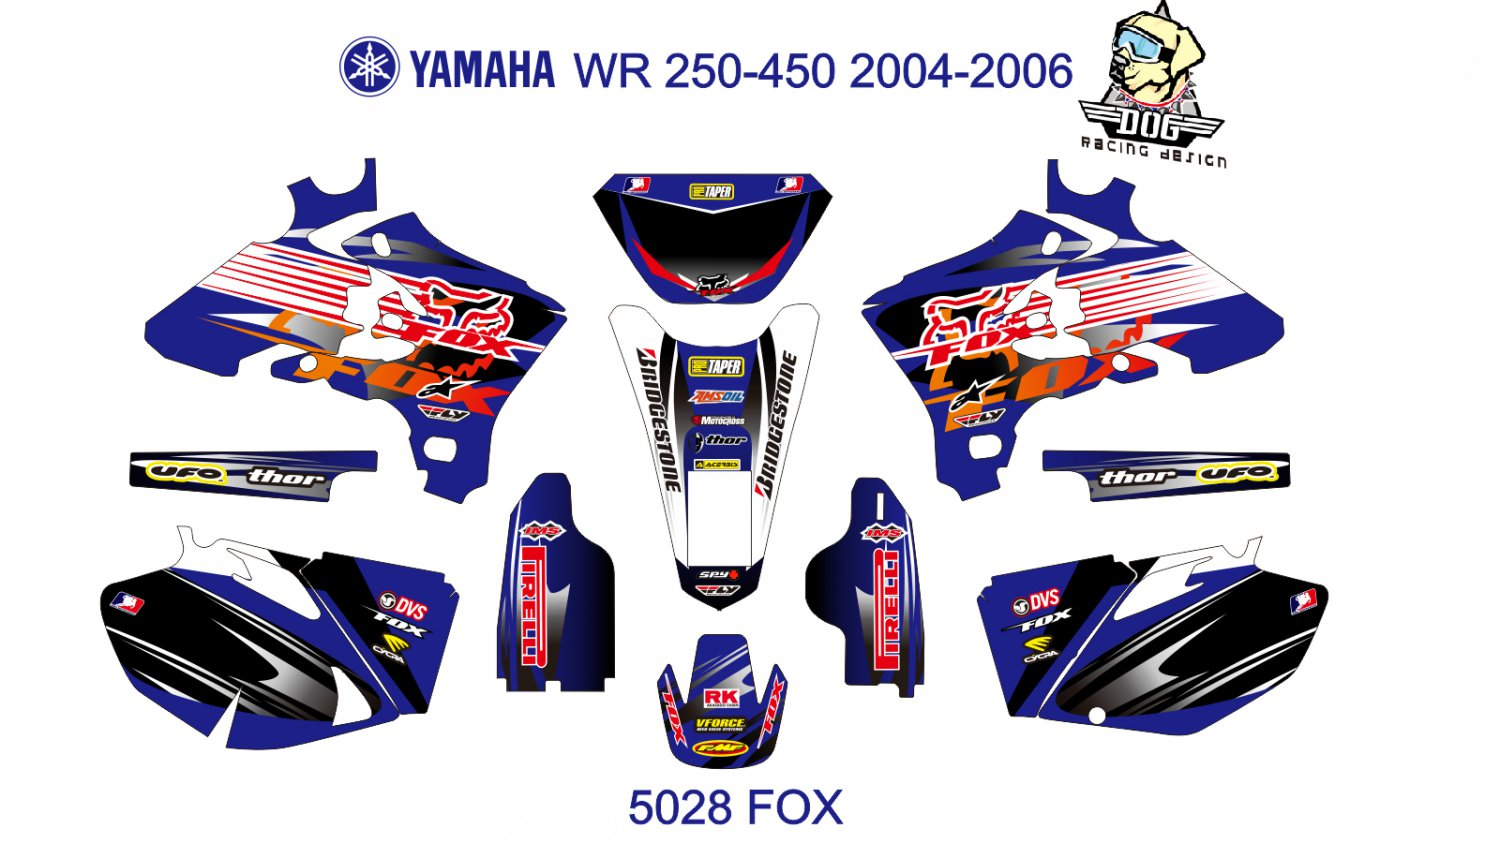 YAMAHA WR 250-450 2004-2006 GRAPHIC DECAL KIT CODE.5028